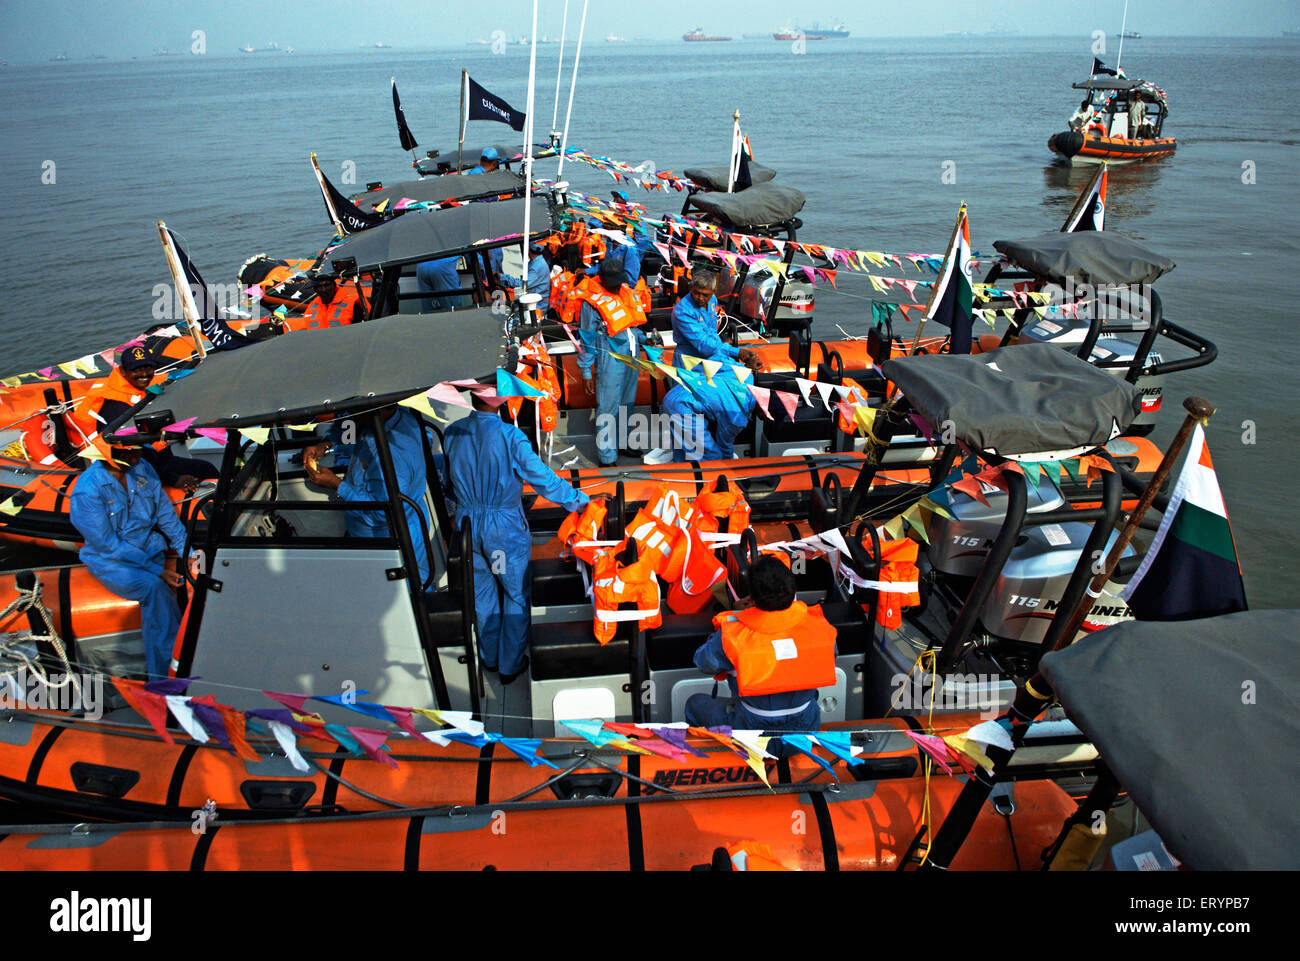 Customs employee checking boats inducted in their fleet for security in Bombay Mumbai  ; Maharashtra  ; India 13 - Stock Image